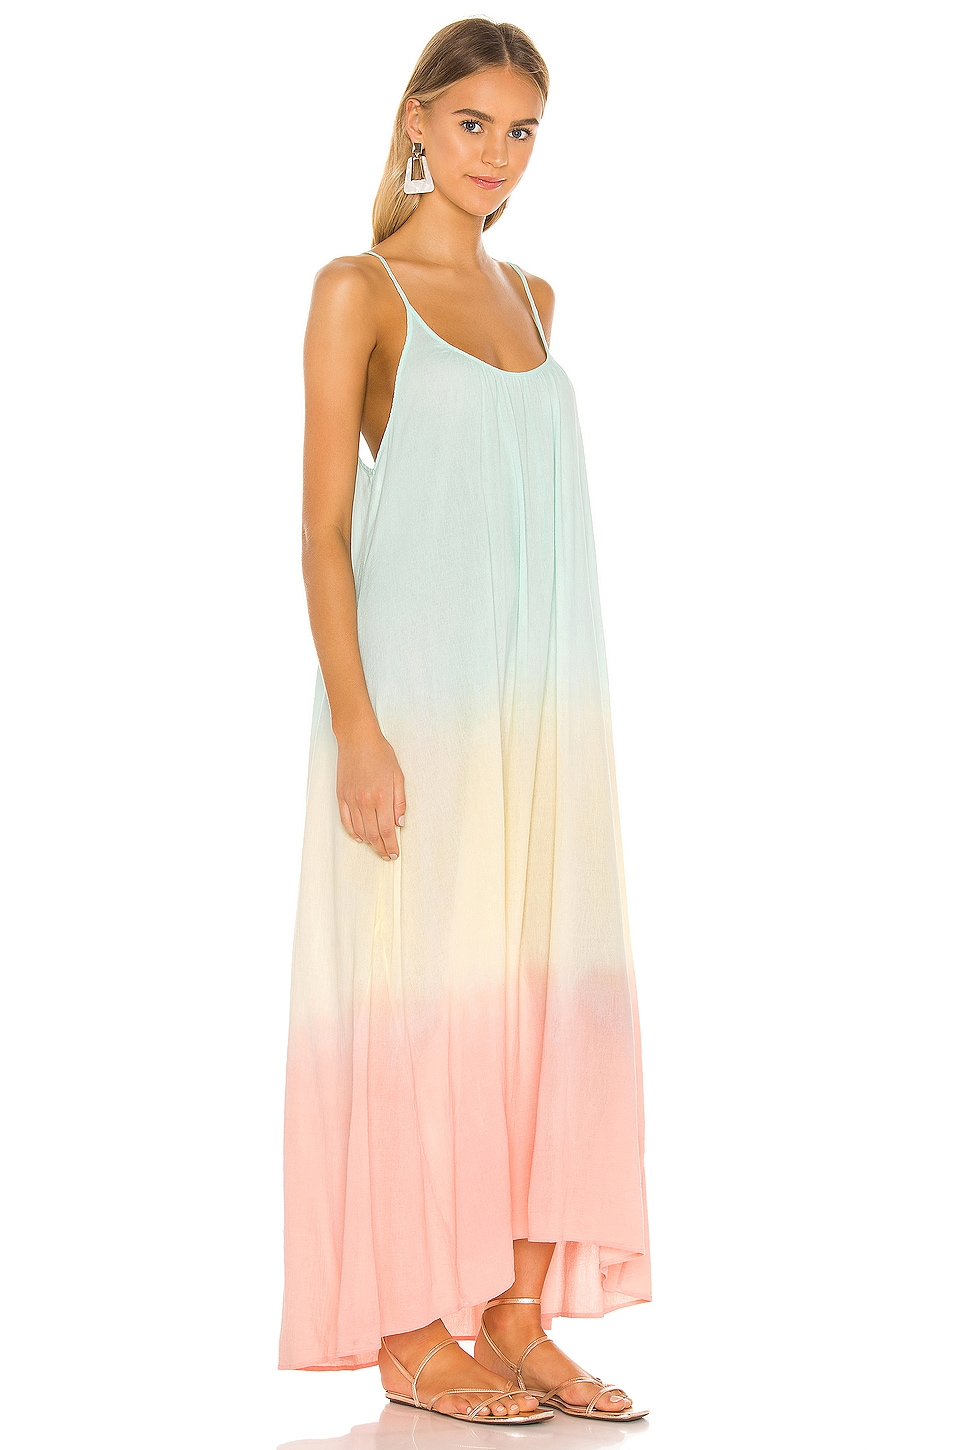 Tulum Core Cotton Maxi Dress, view 2, click to view large image.